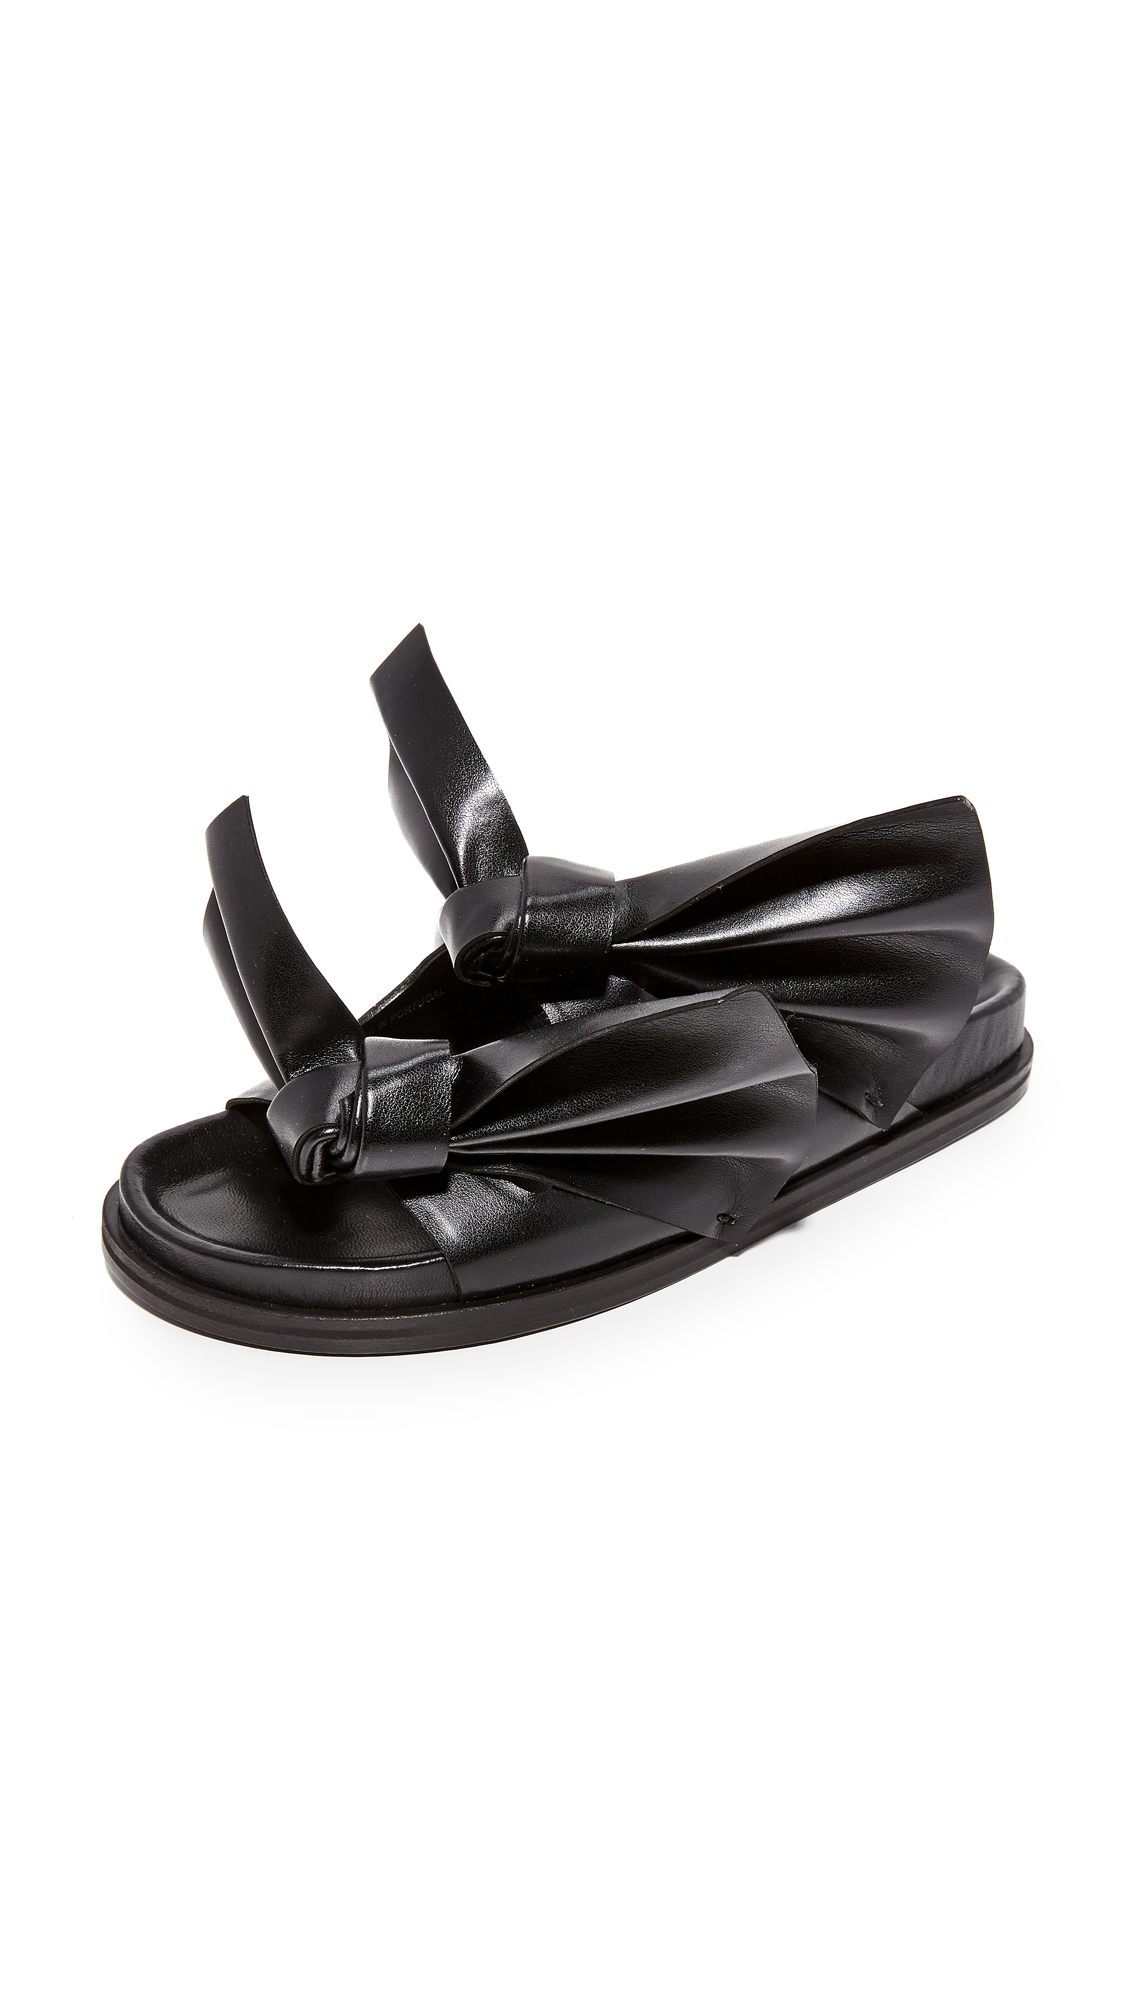 Dramatic, knotted bows detail the vamp on these faux leather Cedric Charlier slides. Molded footbed and stacked platform. Leather sole. Fabric: Faux leather. Made in Portugal. Size & Fit. Available sizes: 36,37,38,39,40,41